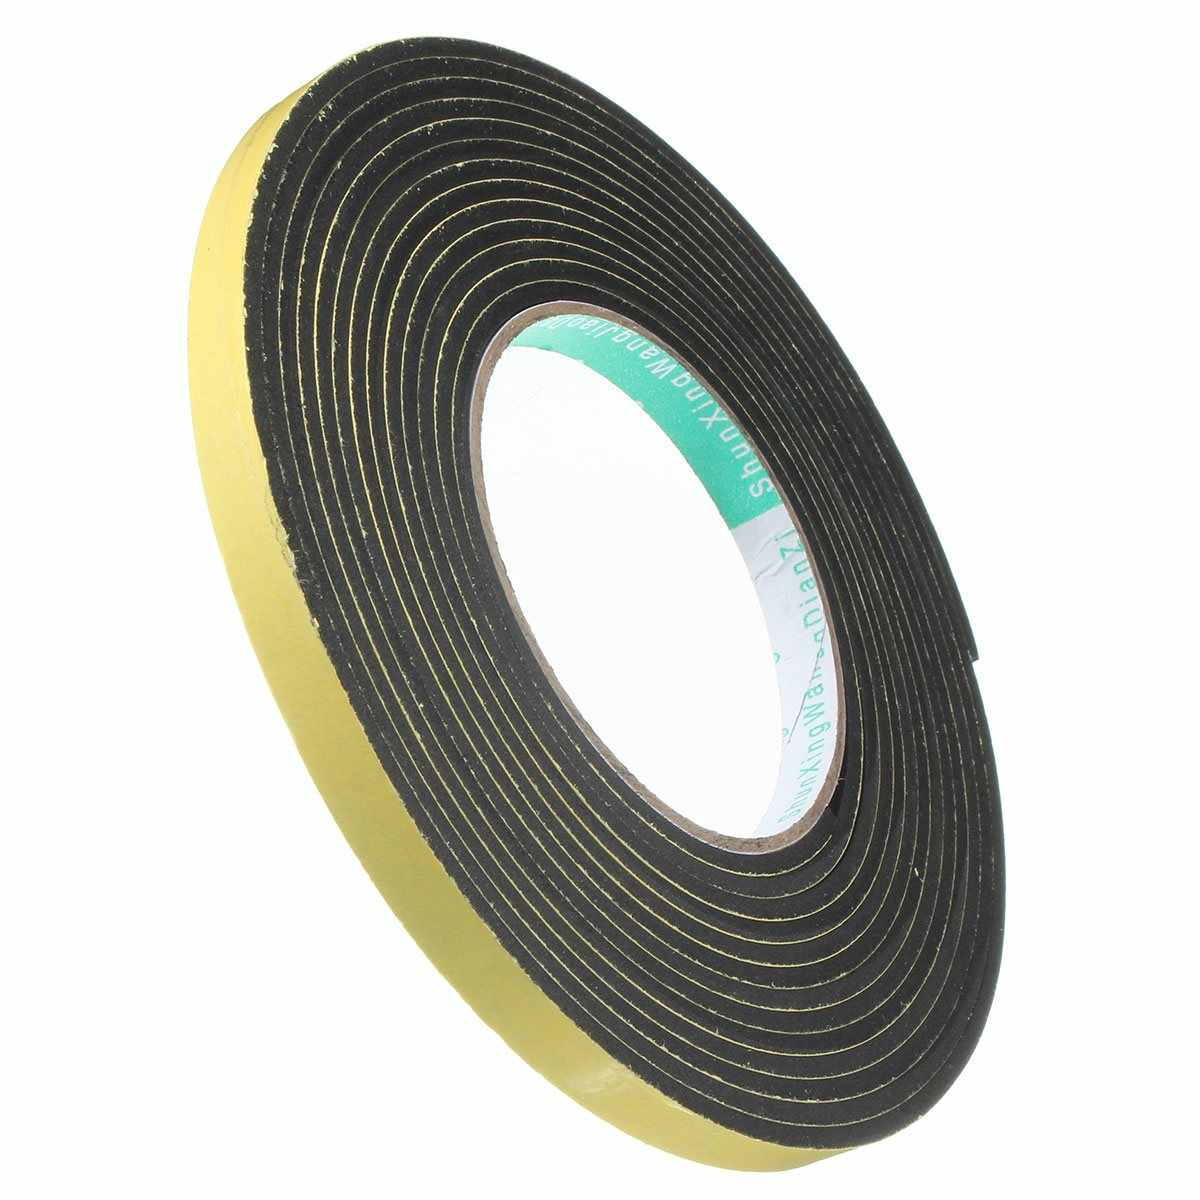 2M/5M Window Door Foam Adhesive Draught Excluder Strip Sealing Tape Adhesive Tape Rubber Weather Strip E/D/I-type